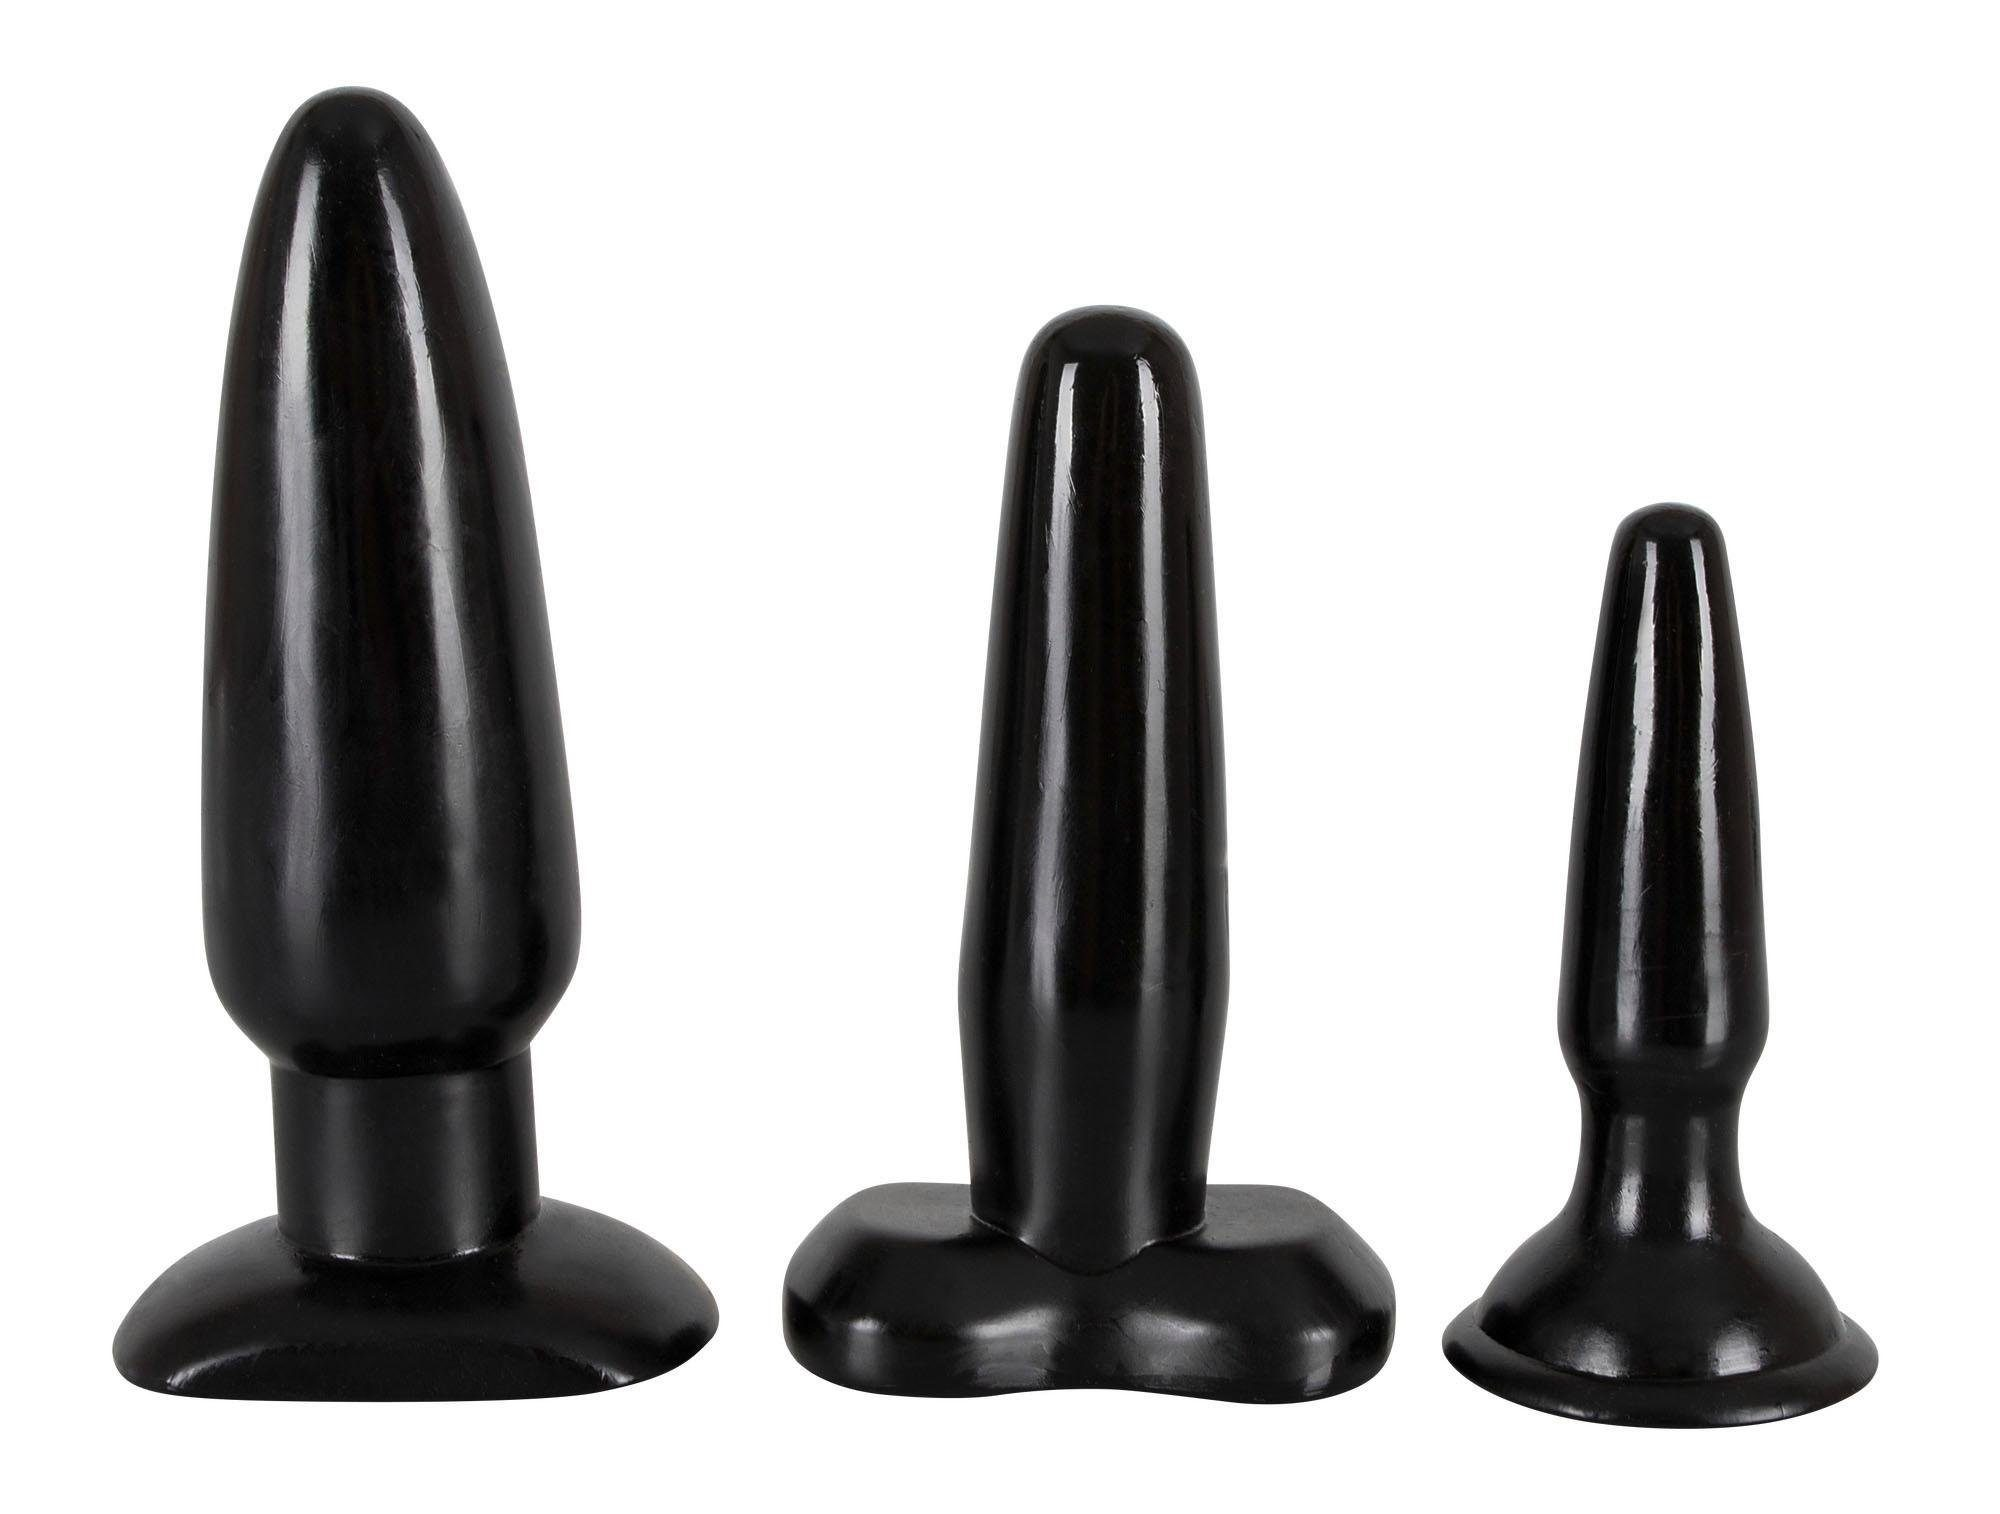 NMC Analplug Set »Liquorice Dip« Buttplugs, 3er Set Analplugs